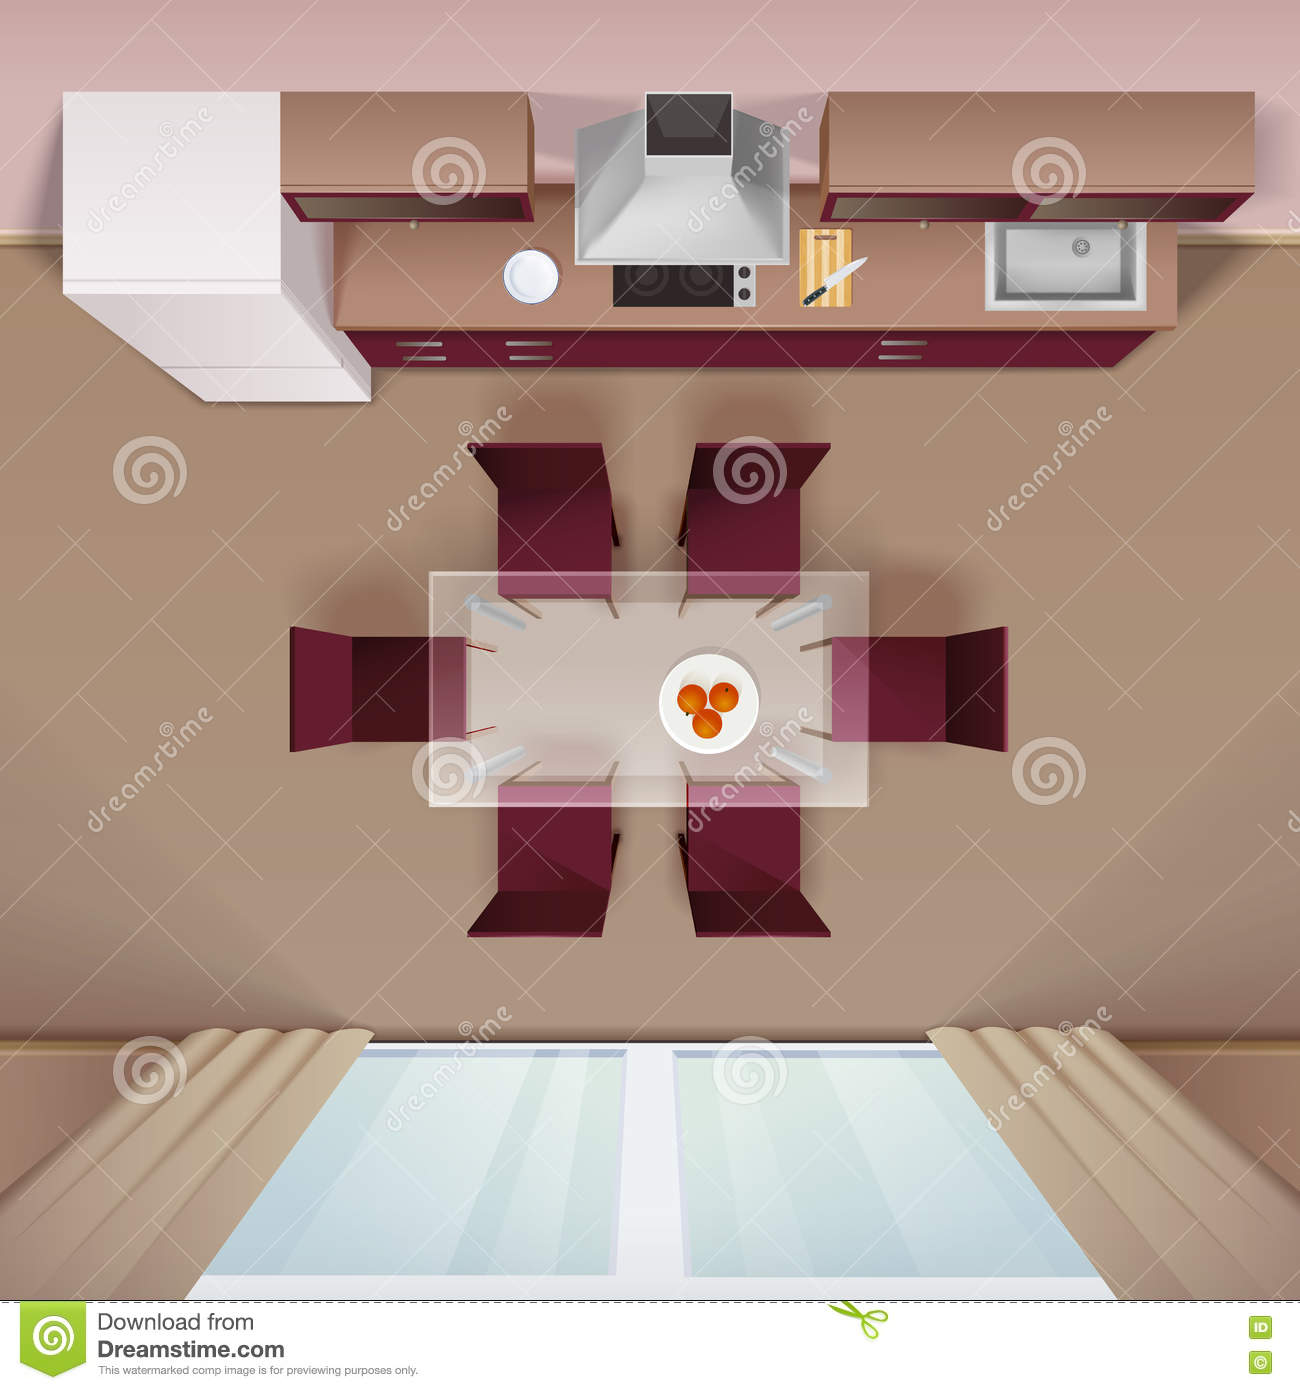 Modern Kitchen Top View Realistic Image Stock Vector Illustration 71170384